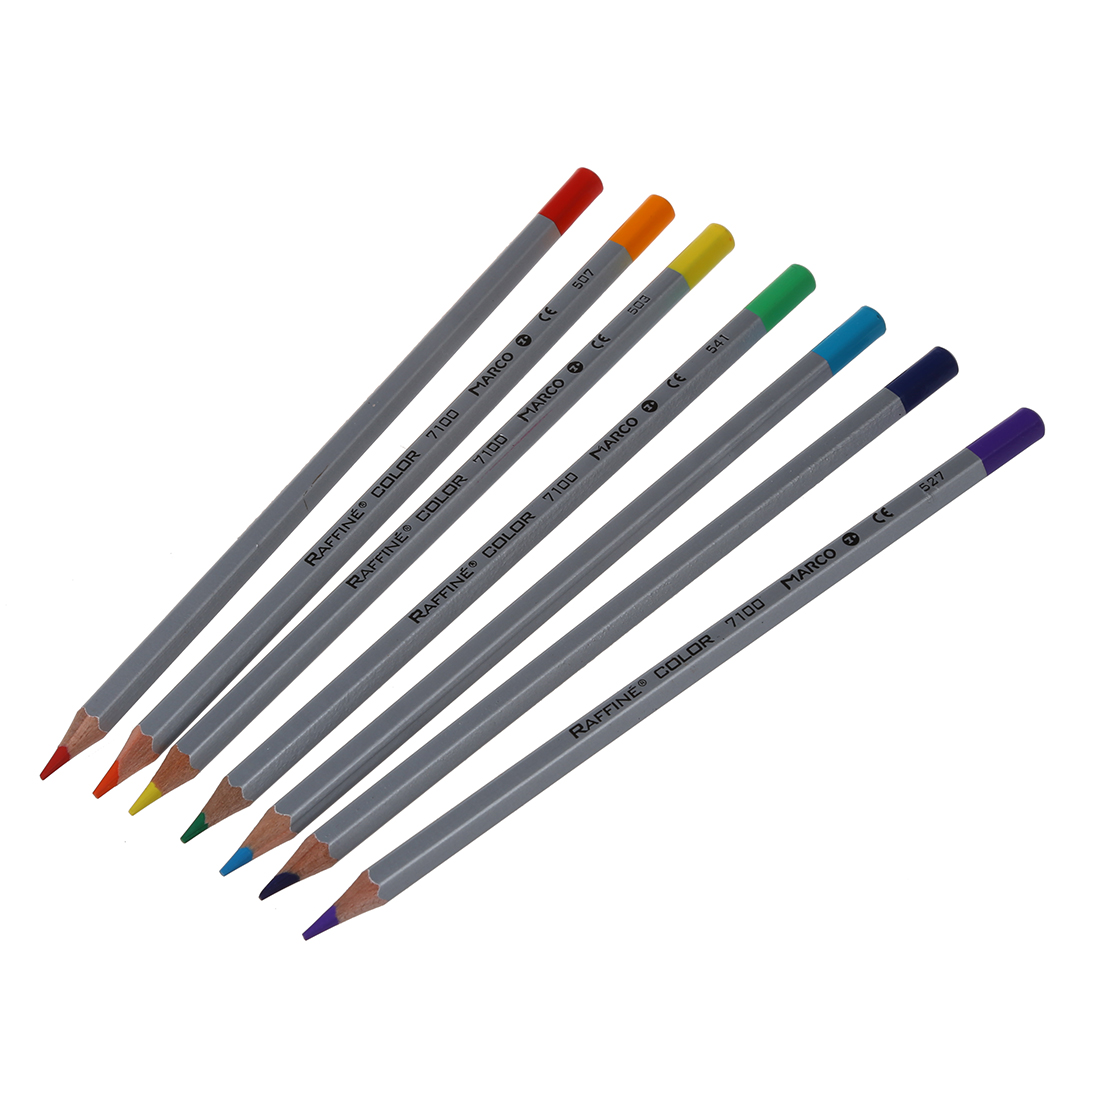 Marco Fine 72Color Art Drawing Oil Base Non-toxic Pencils Set For Artist Sketch maped oil color pencil lead children fine art drawing oil base non toxic colored pencils set 12 18 24 36 48 colors set